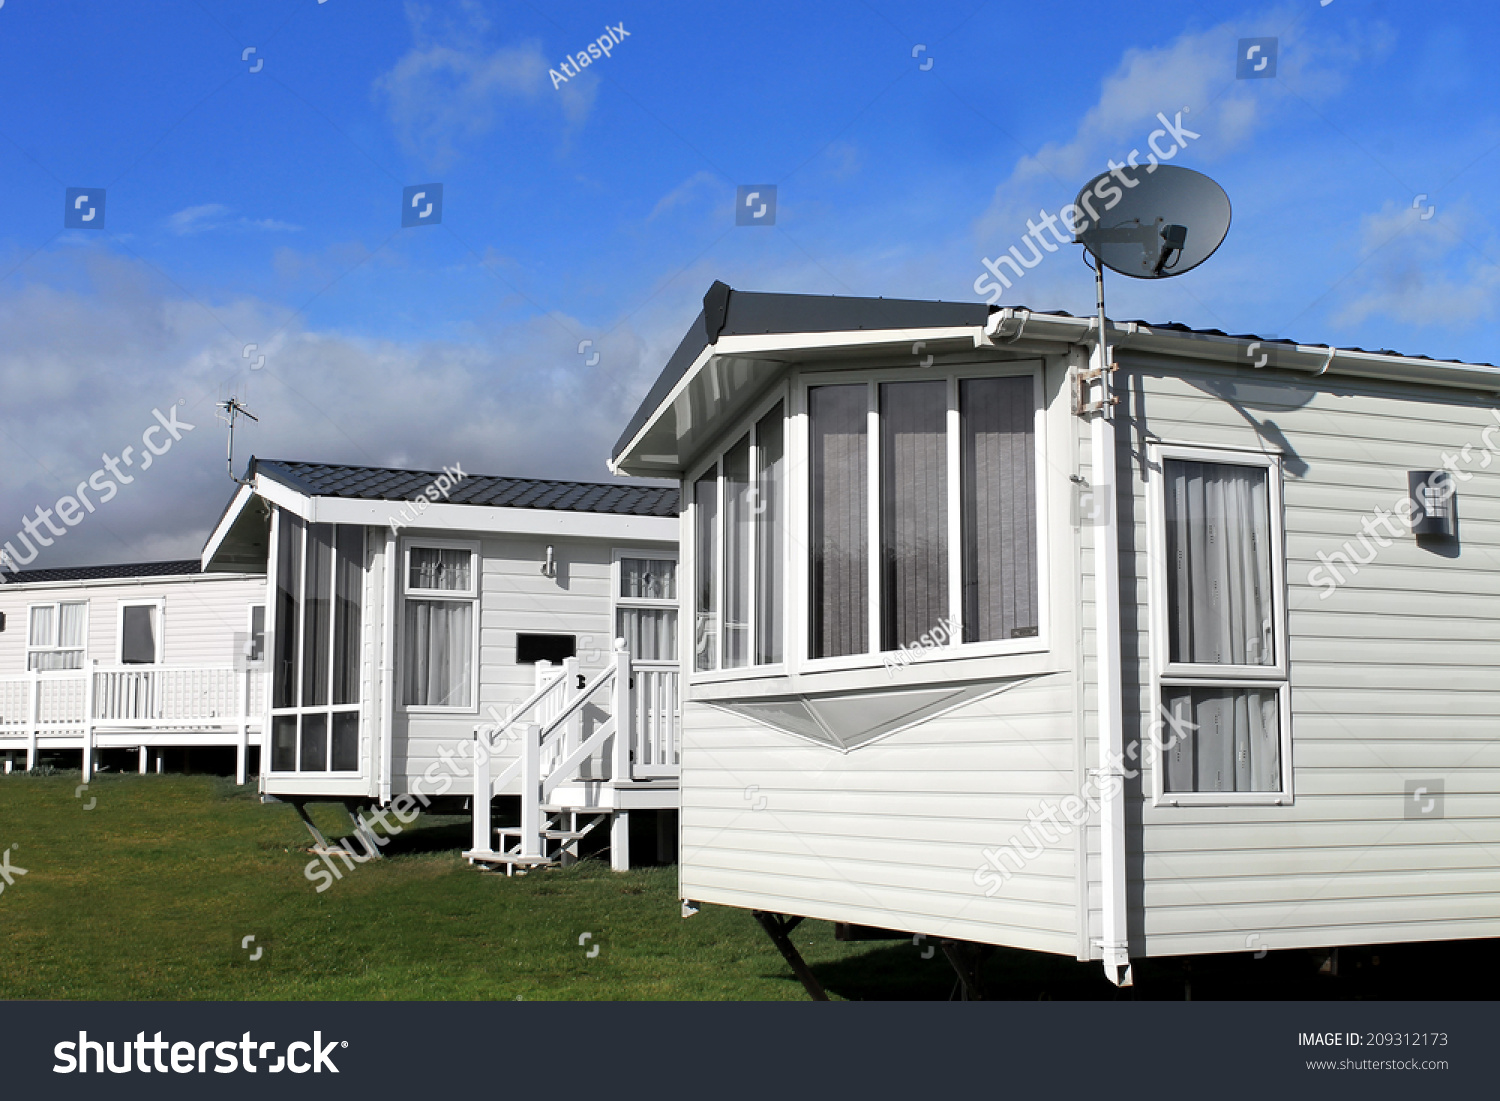 Scenic View Of A Caravan Or Trailer Park In Summer With Blue Sky And Cloudscape Background